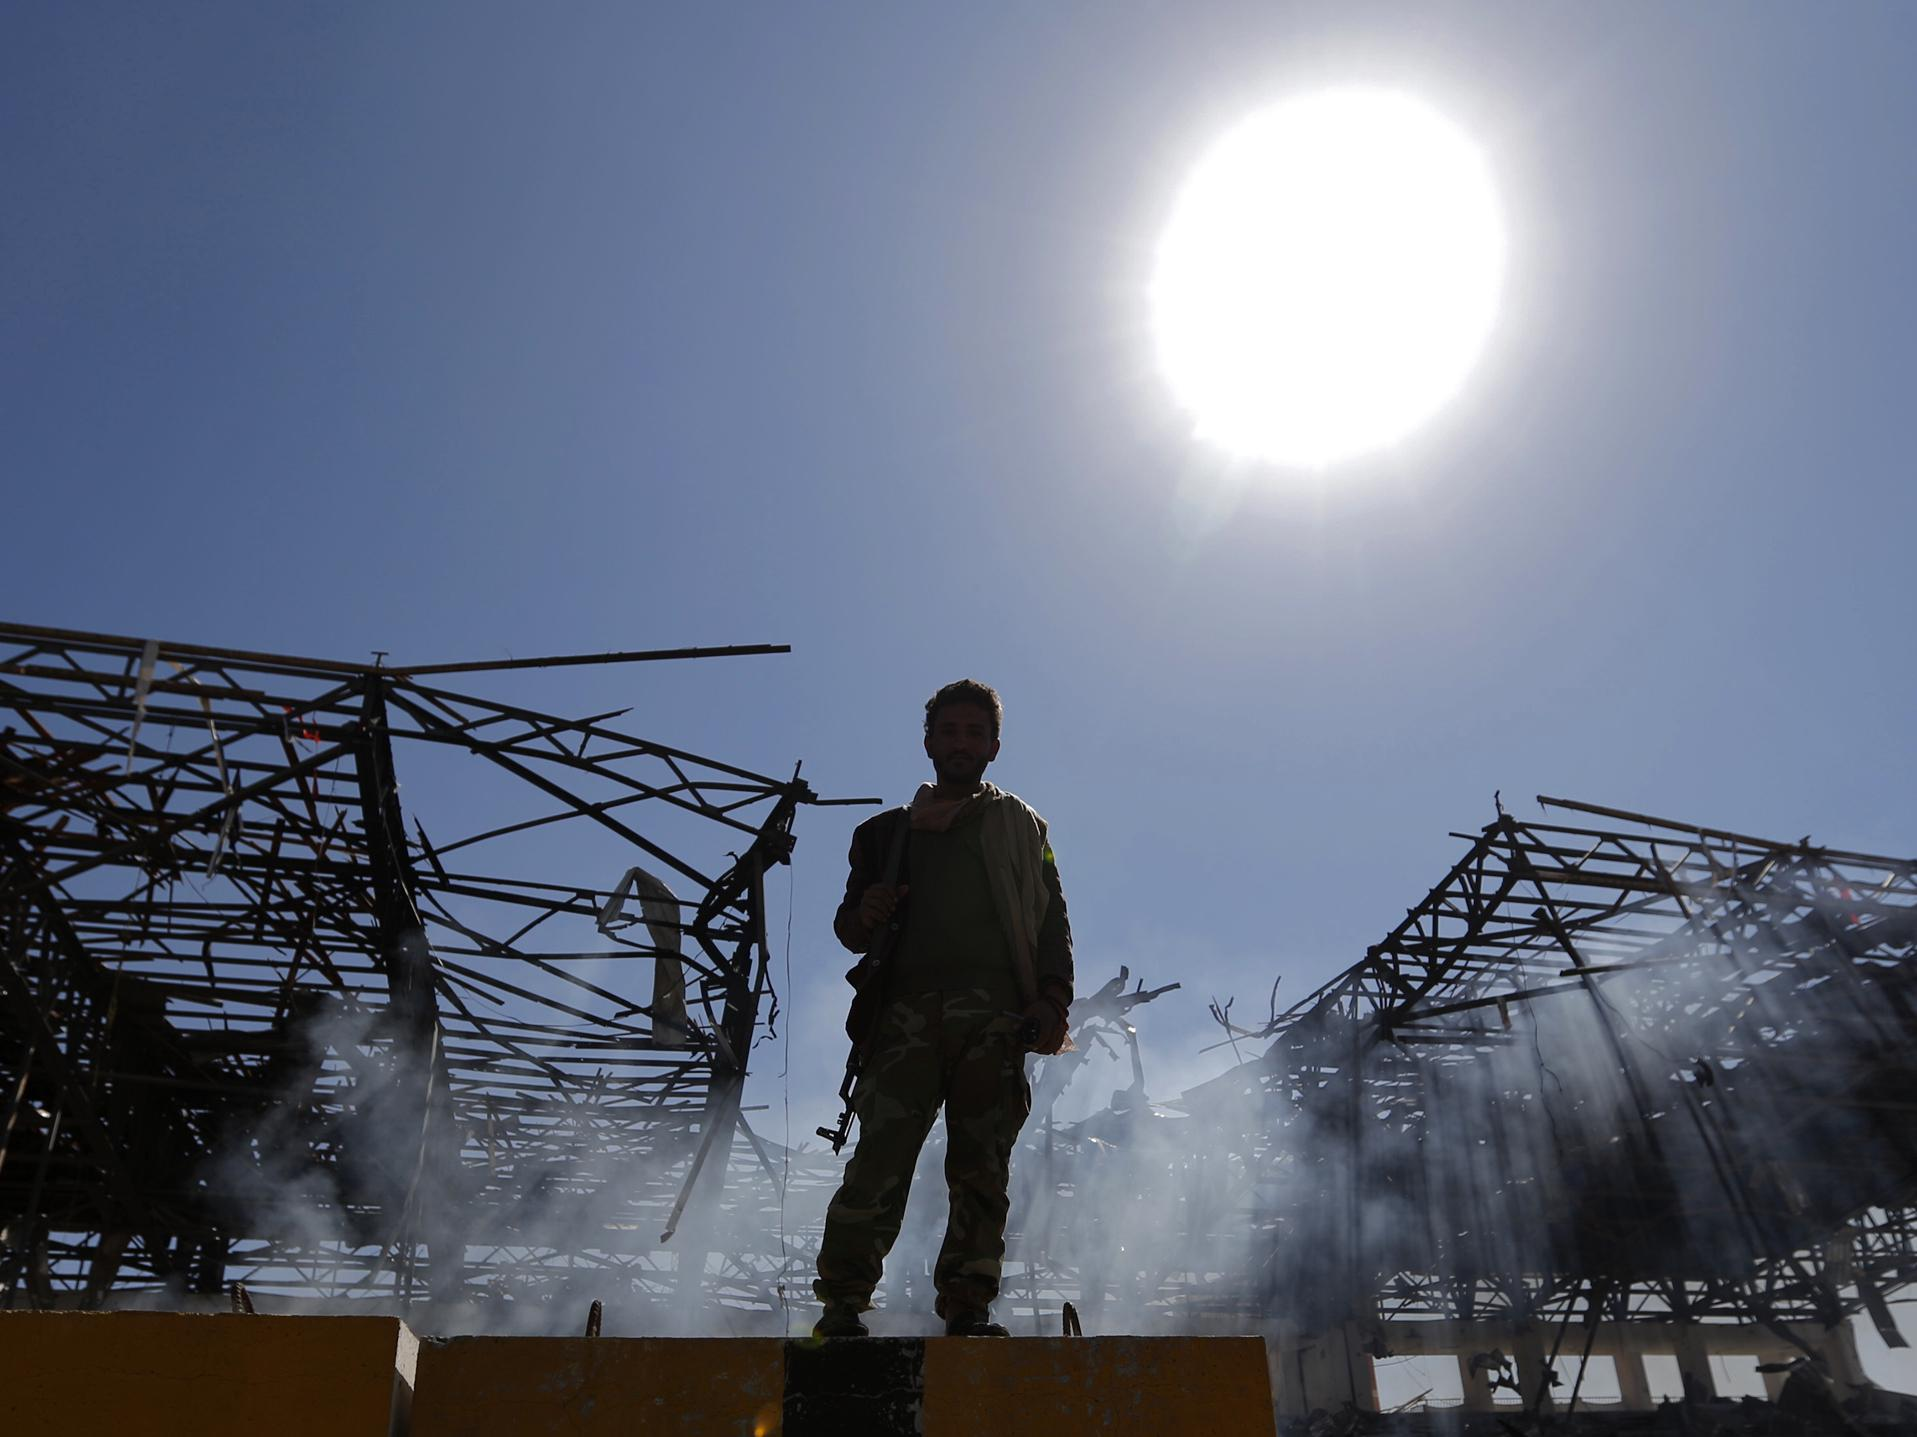 A Houthi fighter inspects the site of an airstrike in the Yemeni capital Sanaa earlier this month